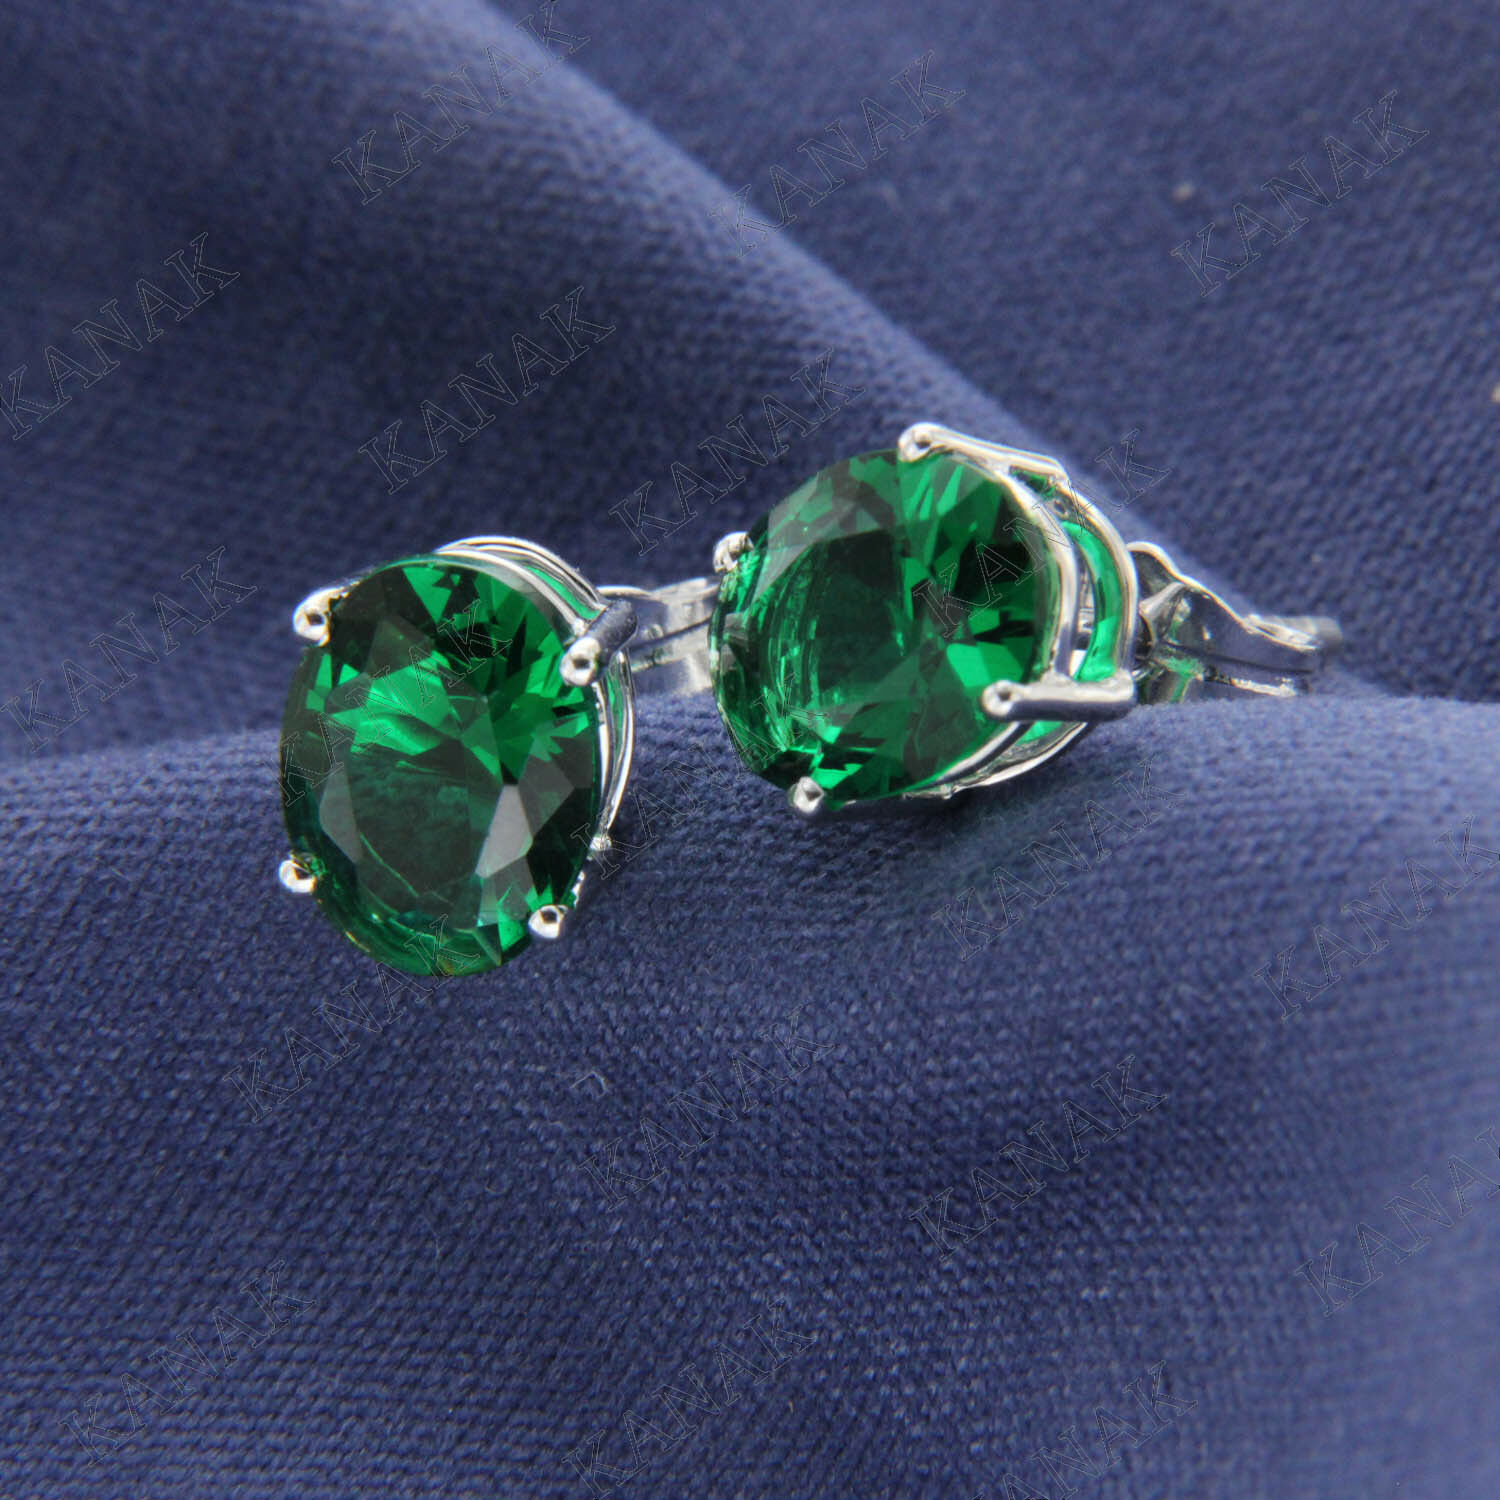 2.64 TCW Oval Cut Green Emerald Solitaire Stud Earrings 14k White gold Finish